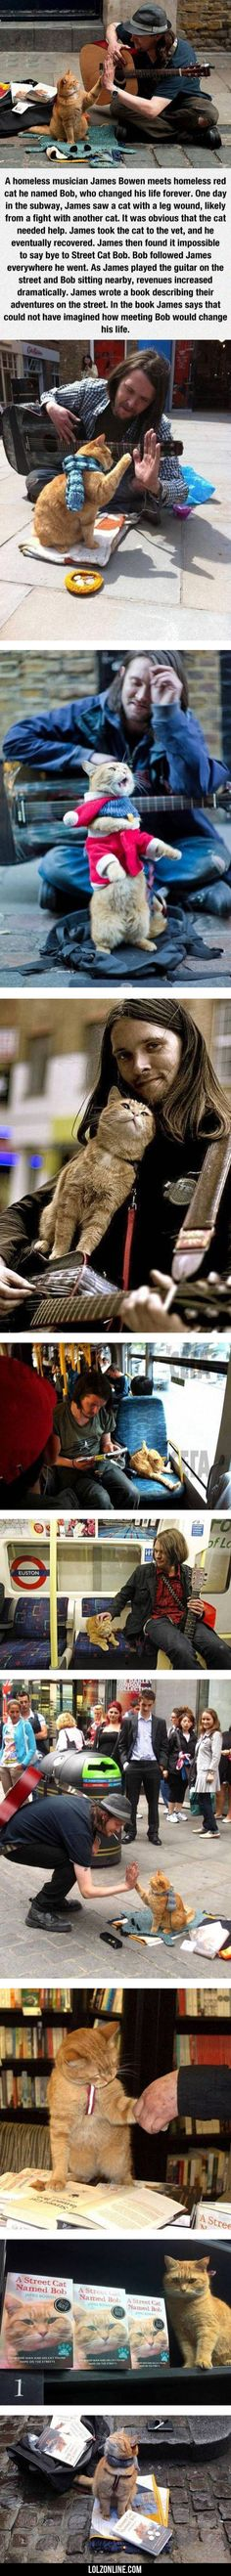 A Homeless Musician And His Cat...#funny #lol #lolzonline